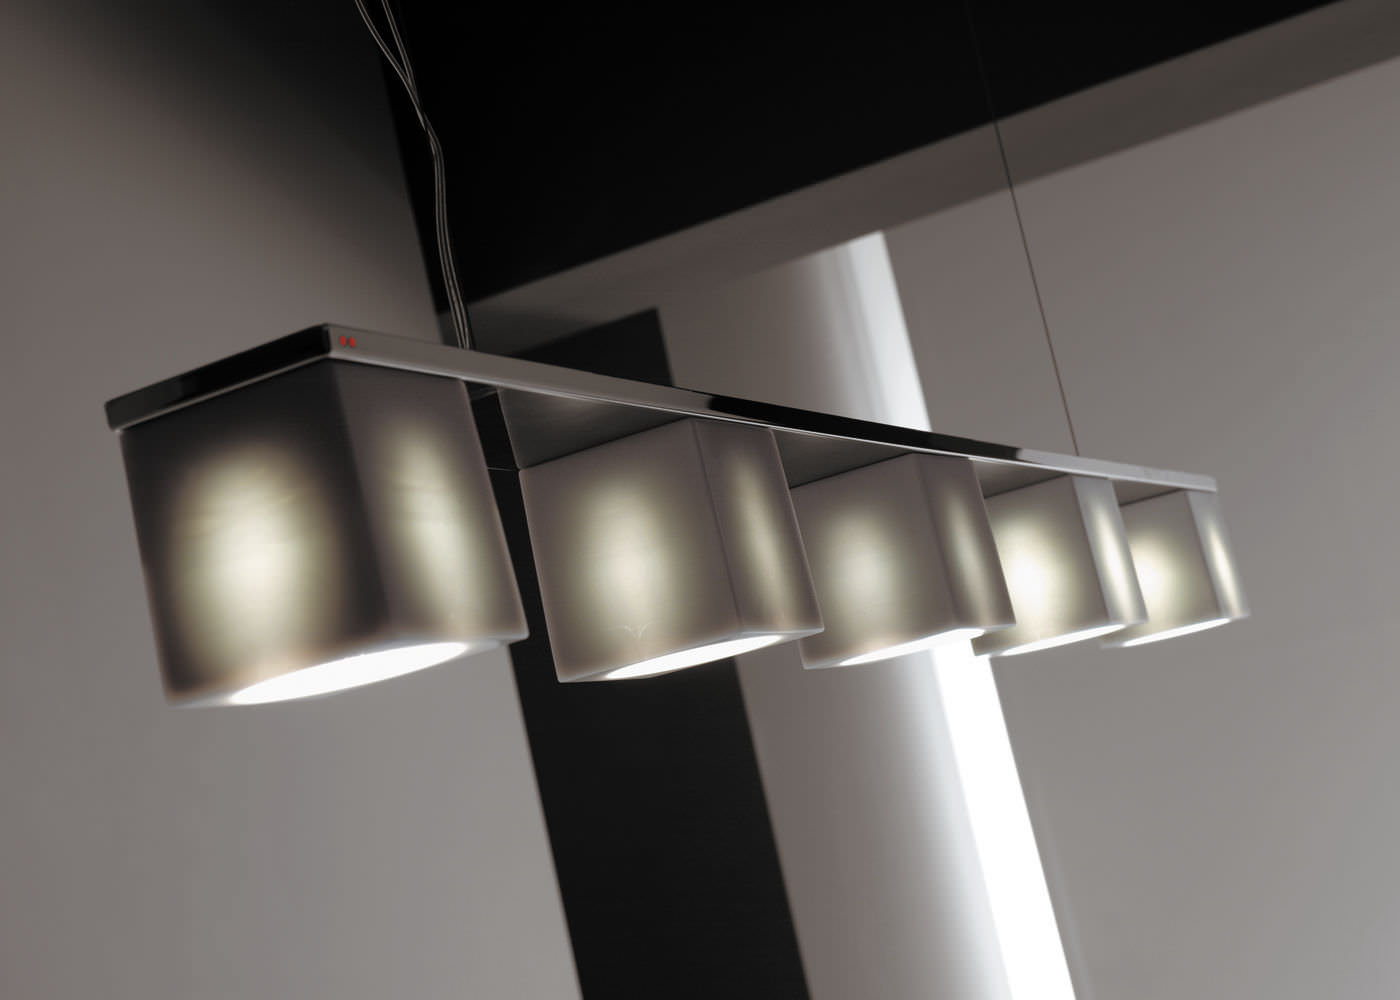 Pendant lamp / contemporary / metal / crystal - CUBETTO D28 by Pamio ...